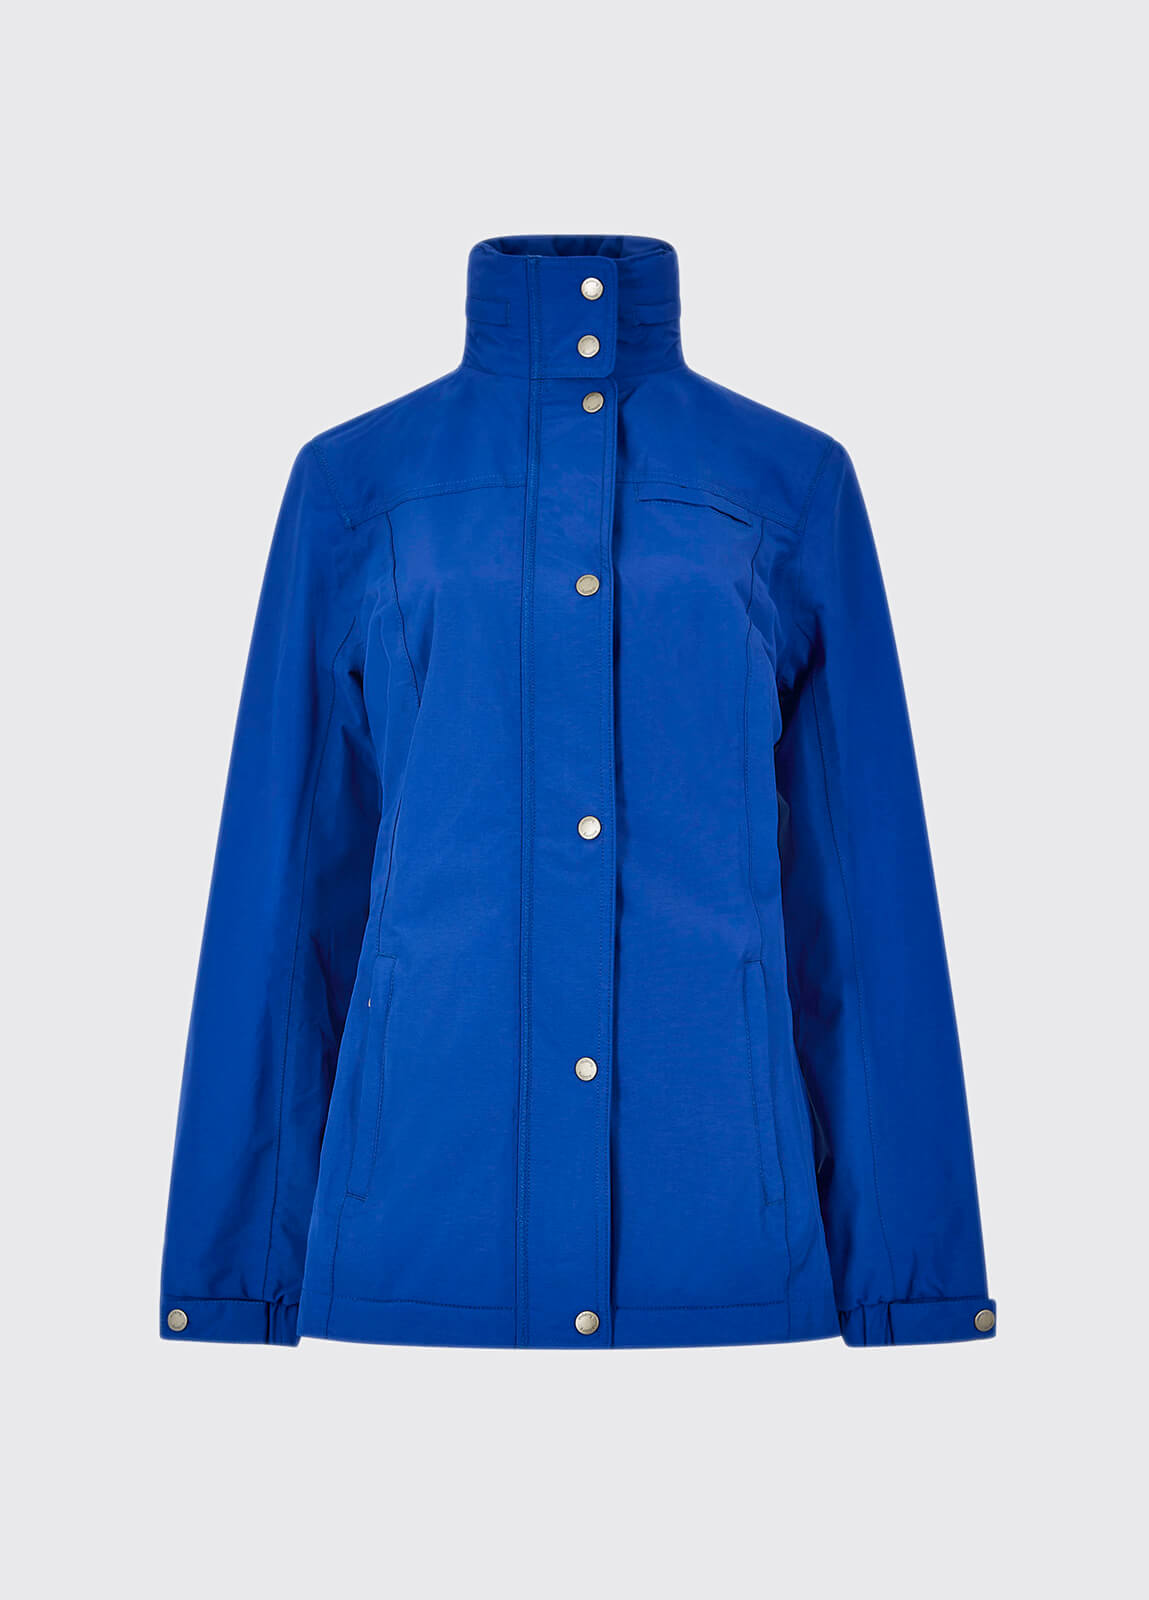 Aran Jacket - Royal Blue